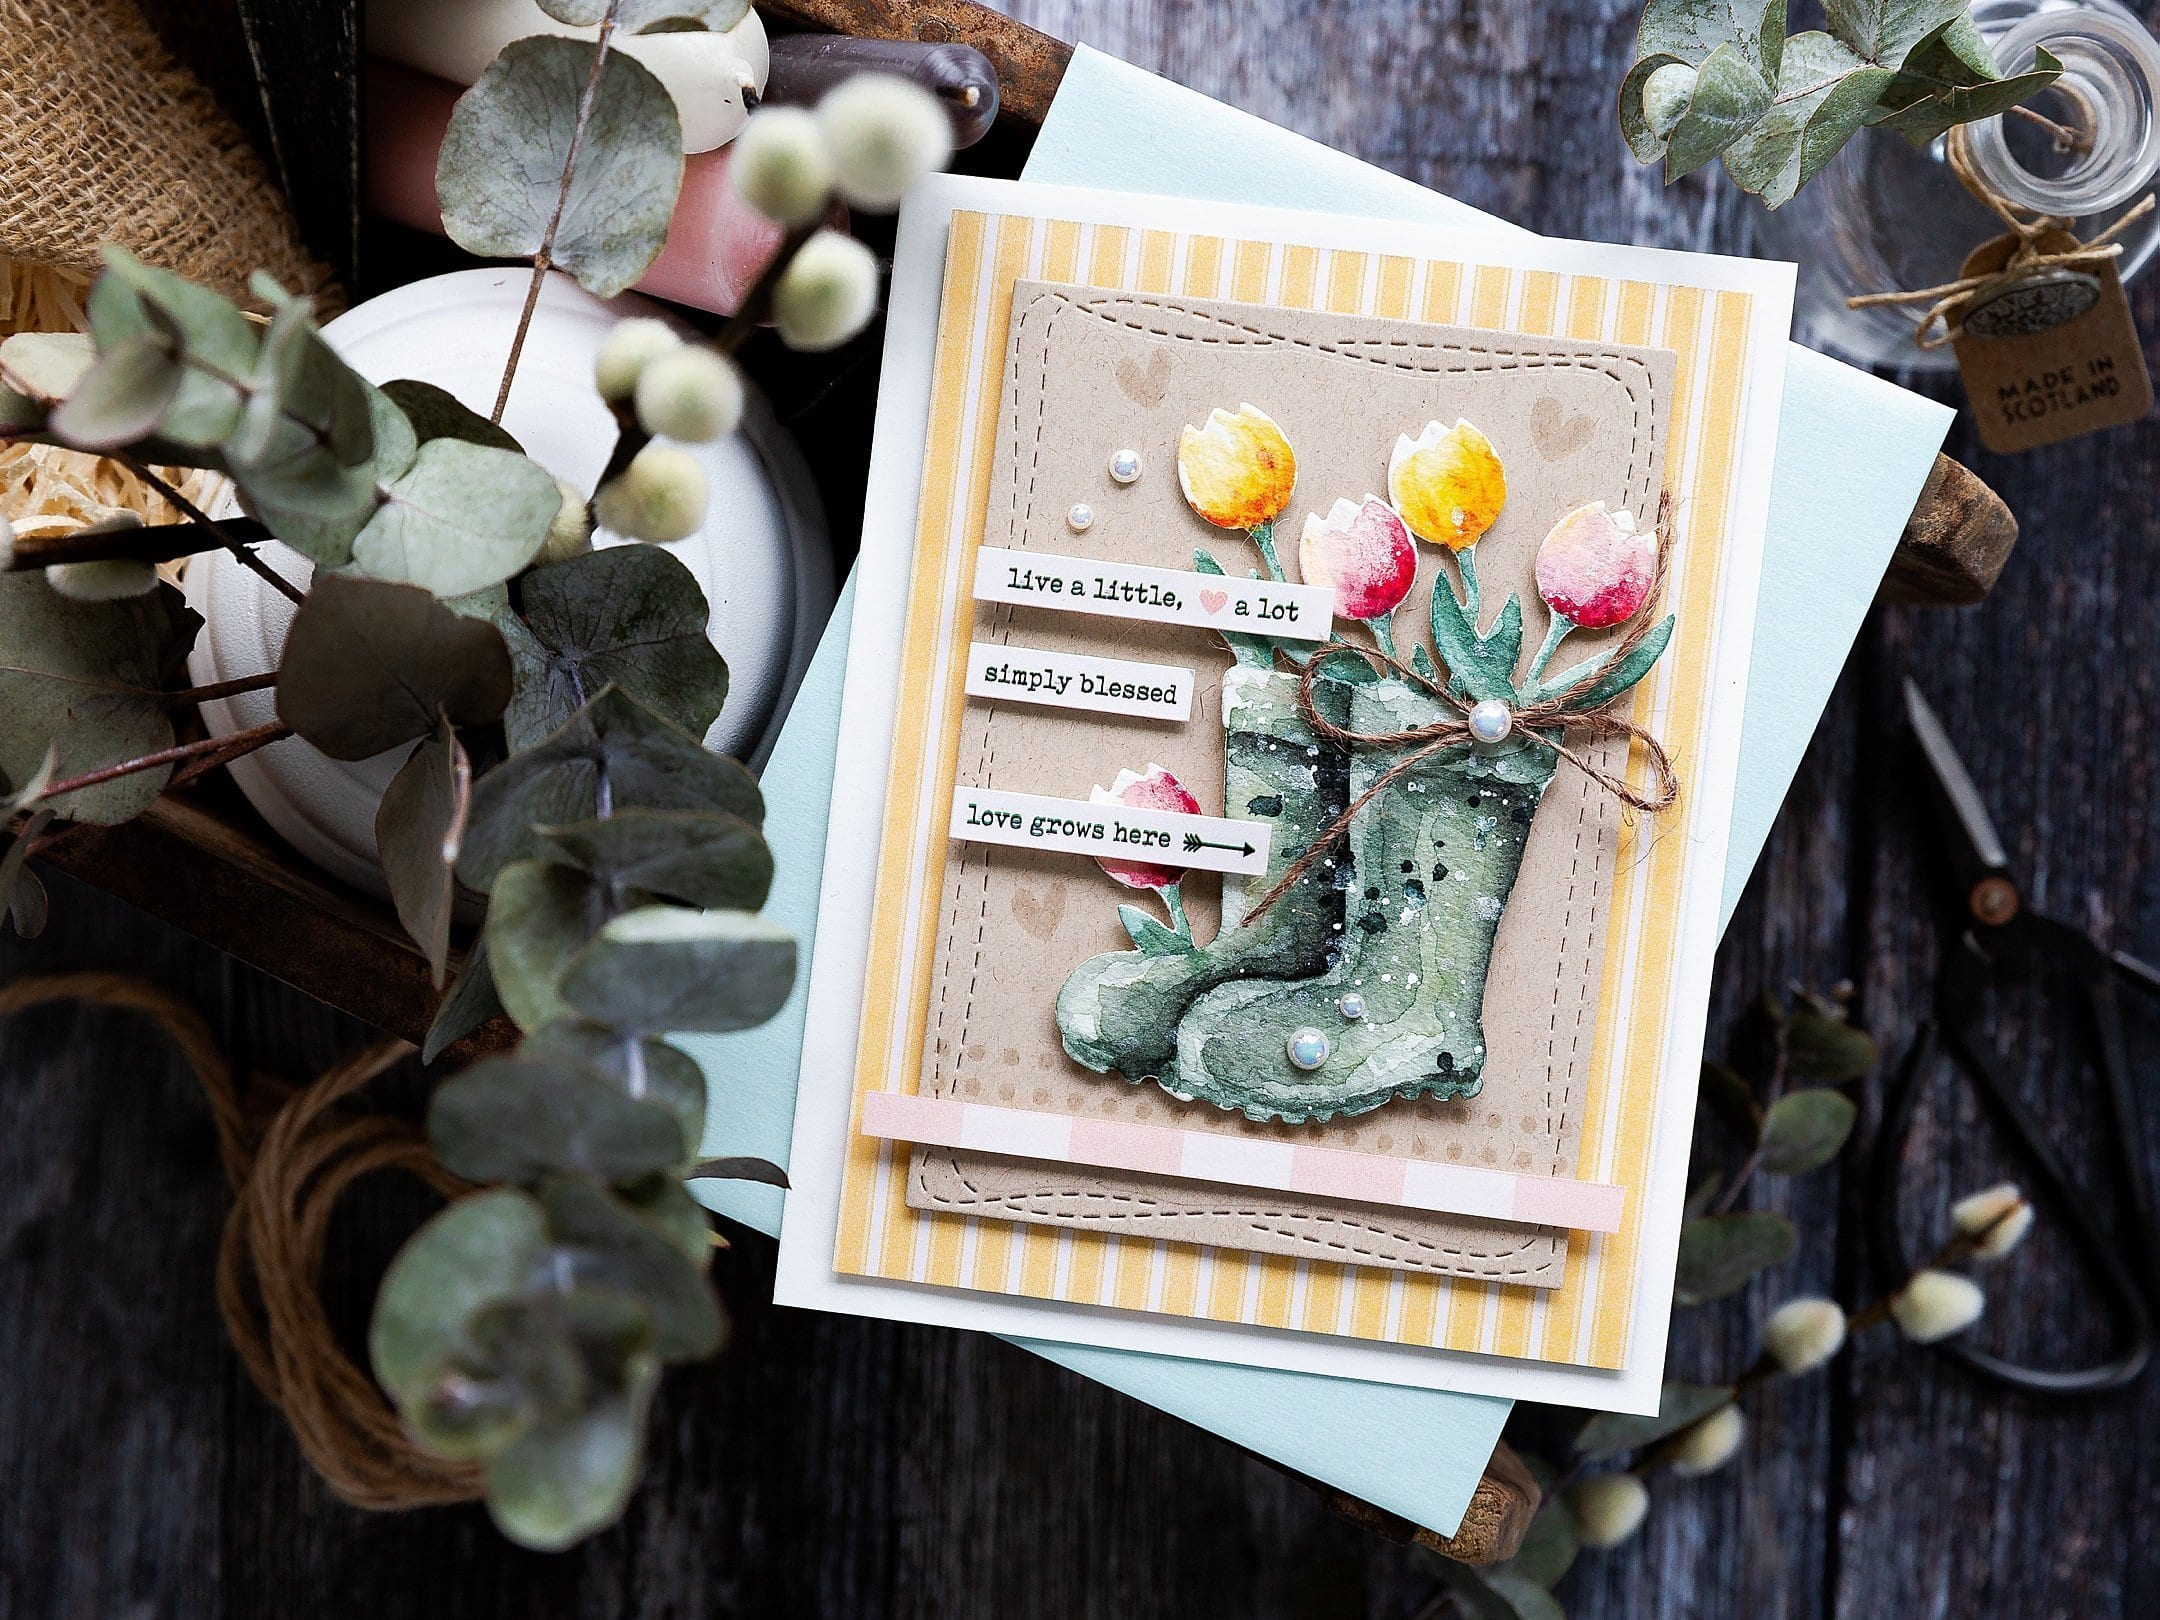 Watercoloured die cut handmade card by Debby Hughes using the April Card Kit from Simon Says Stamp. Find out more here: https://limedoodledesign.com/2019/03/watercoloured-die-cut/